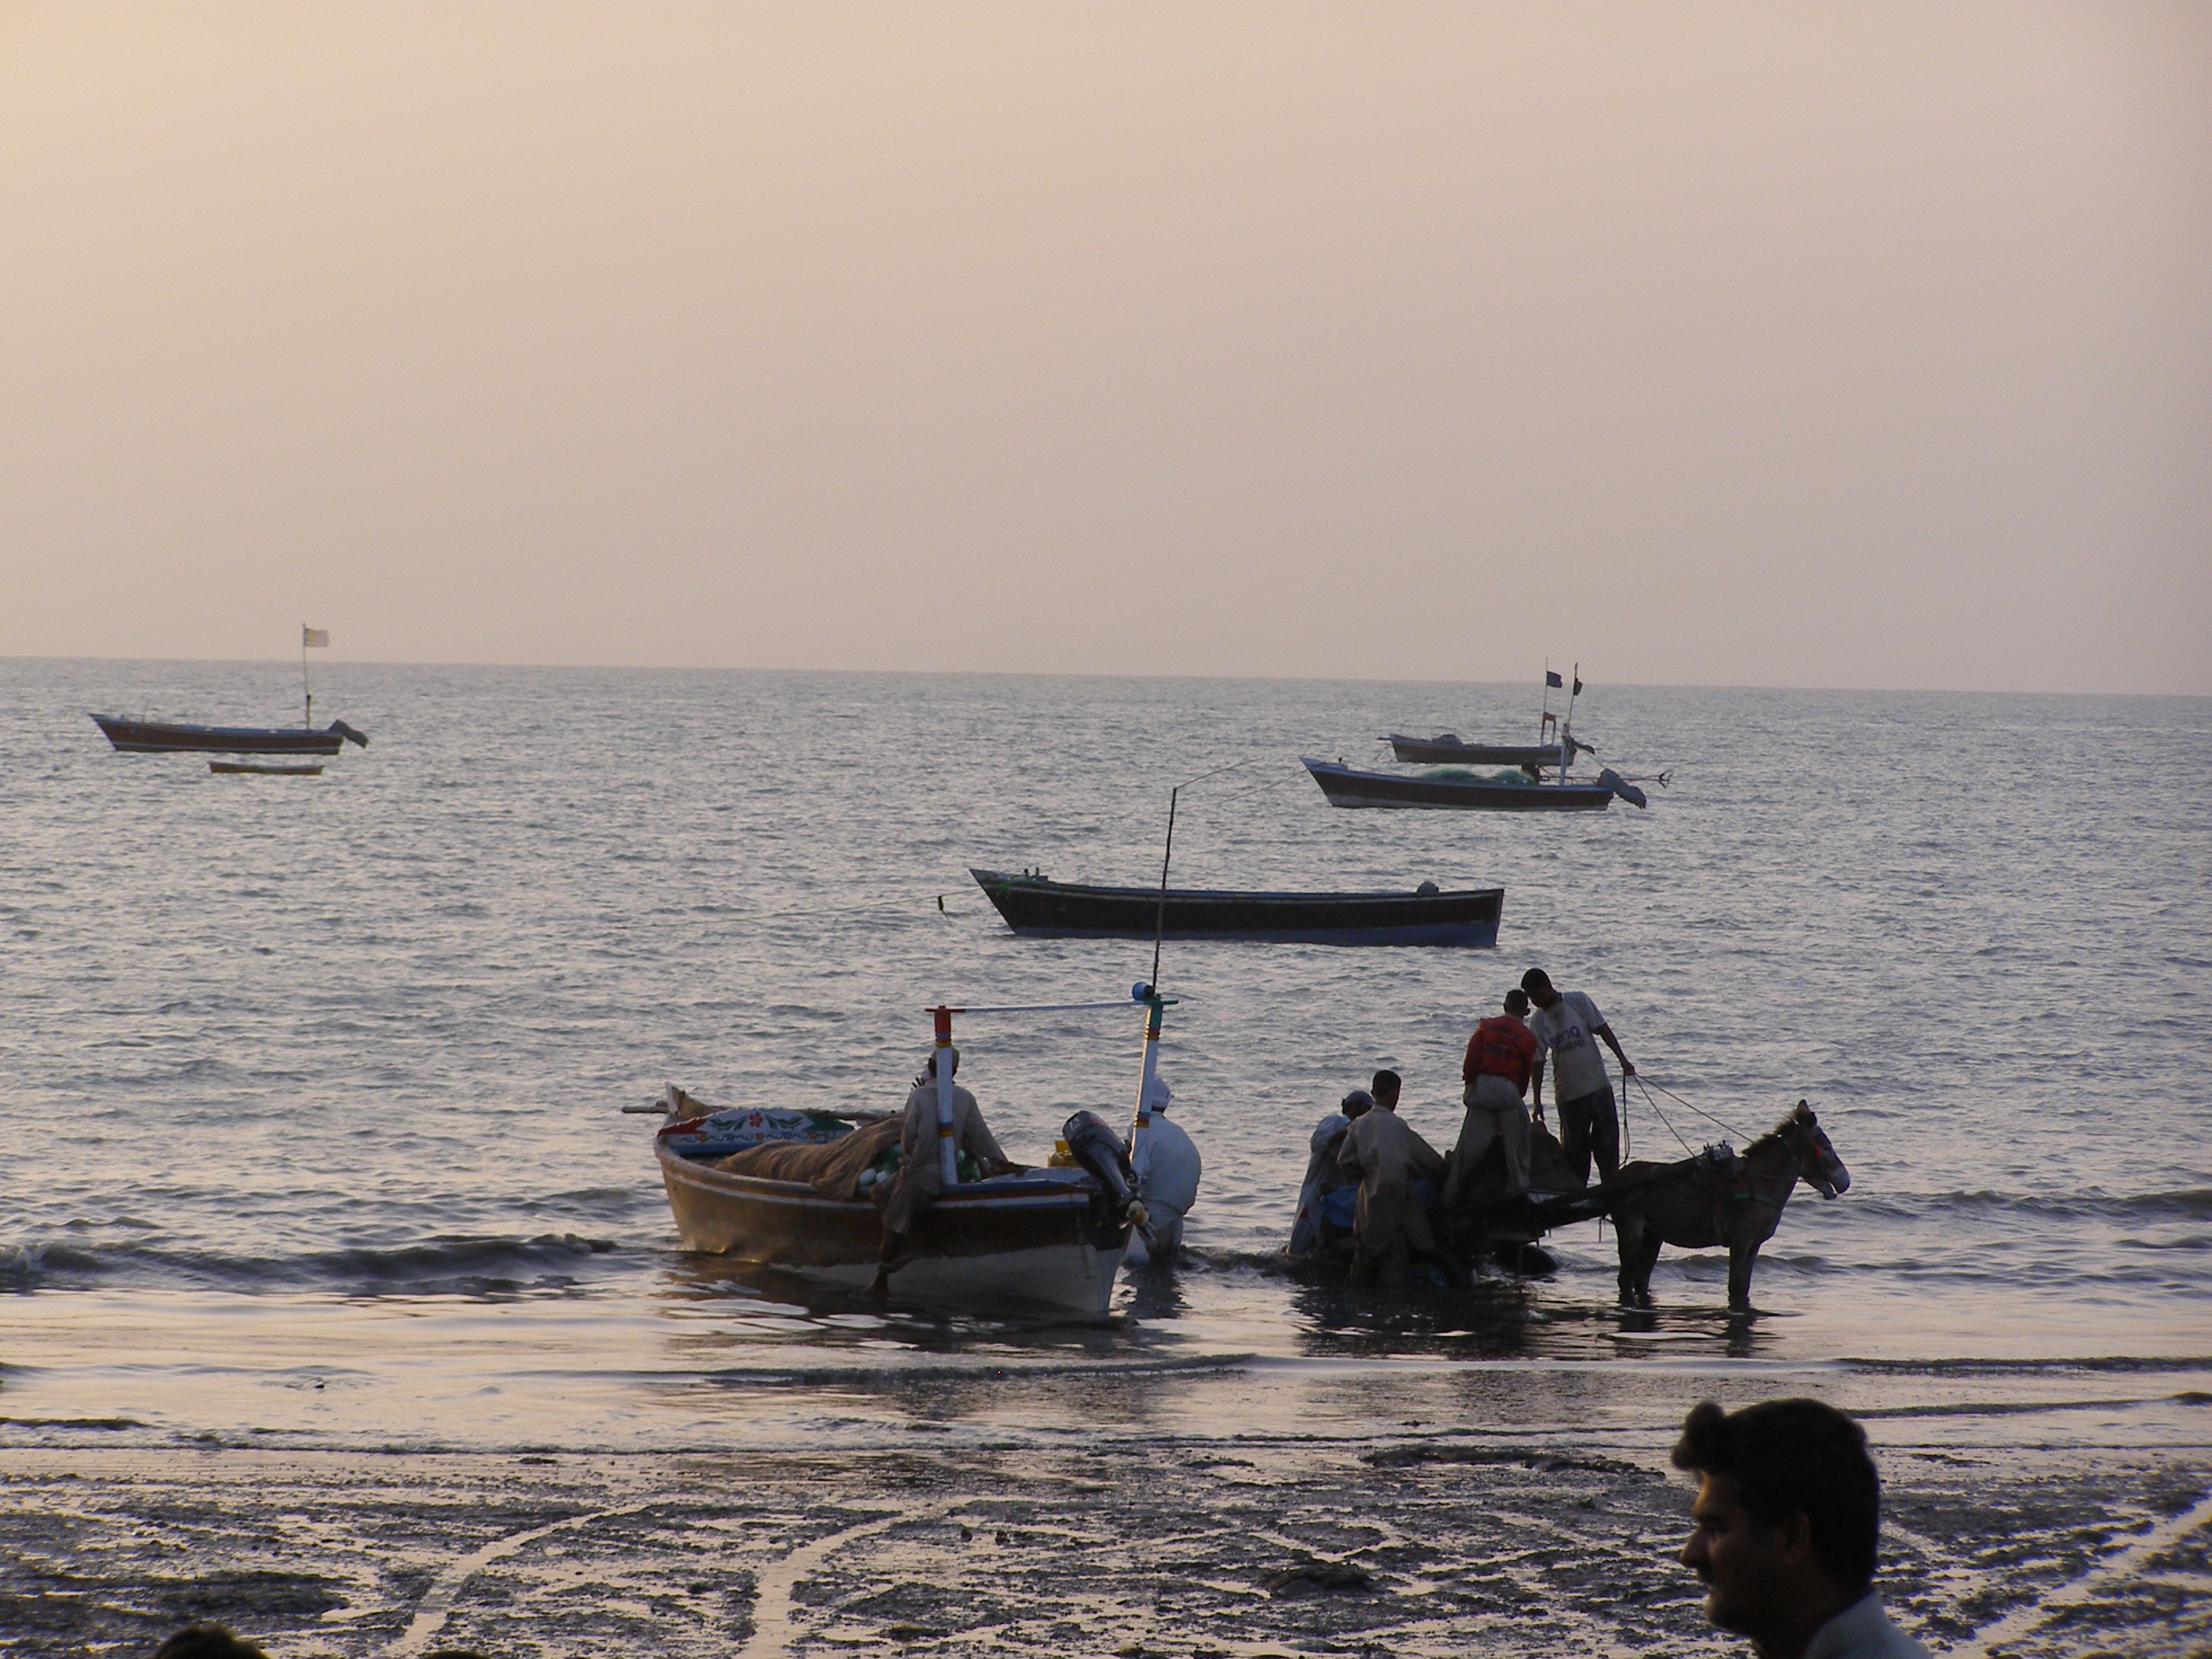 Fishermen coming ashore to unload their catch on donkey carts Photo Courtesy: Shahzad Ahmad)